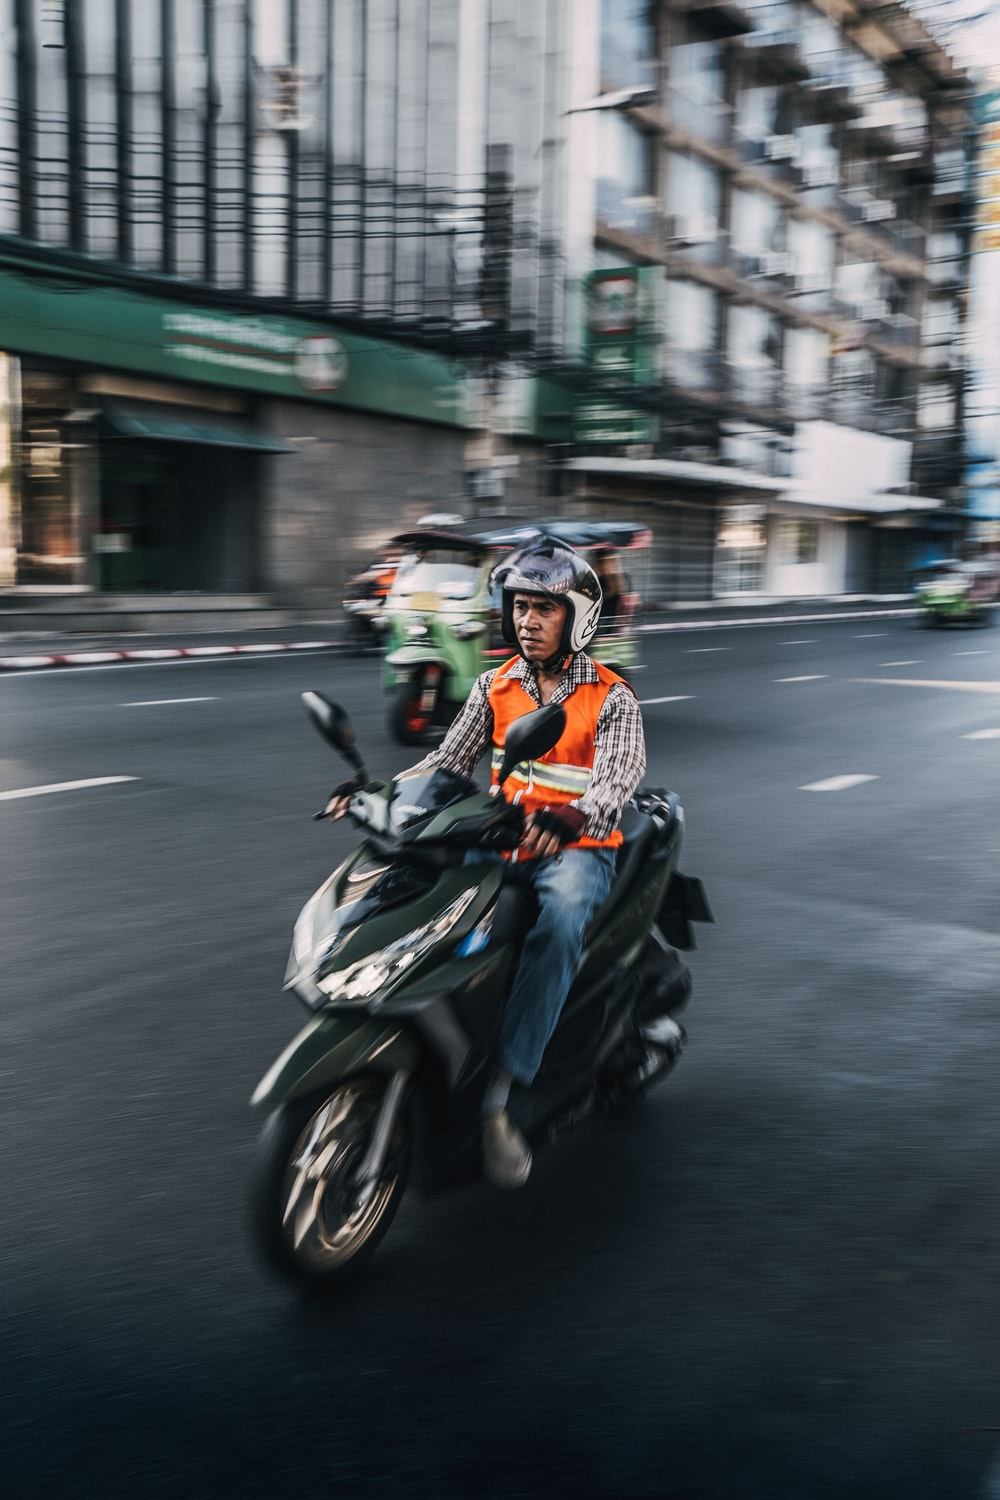 man driving scooter motorcycle during daytime